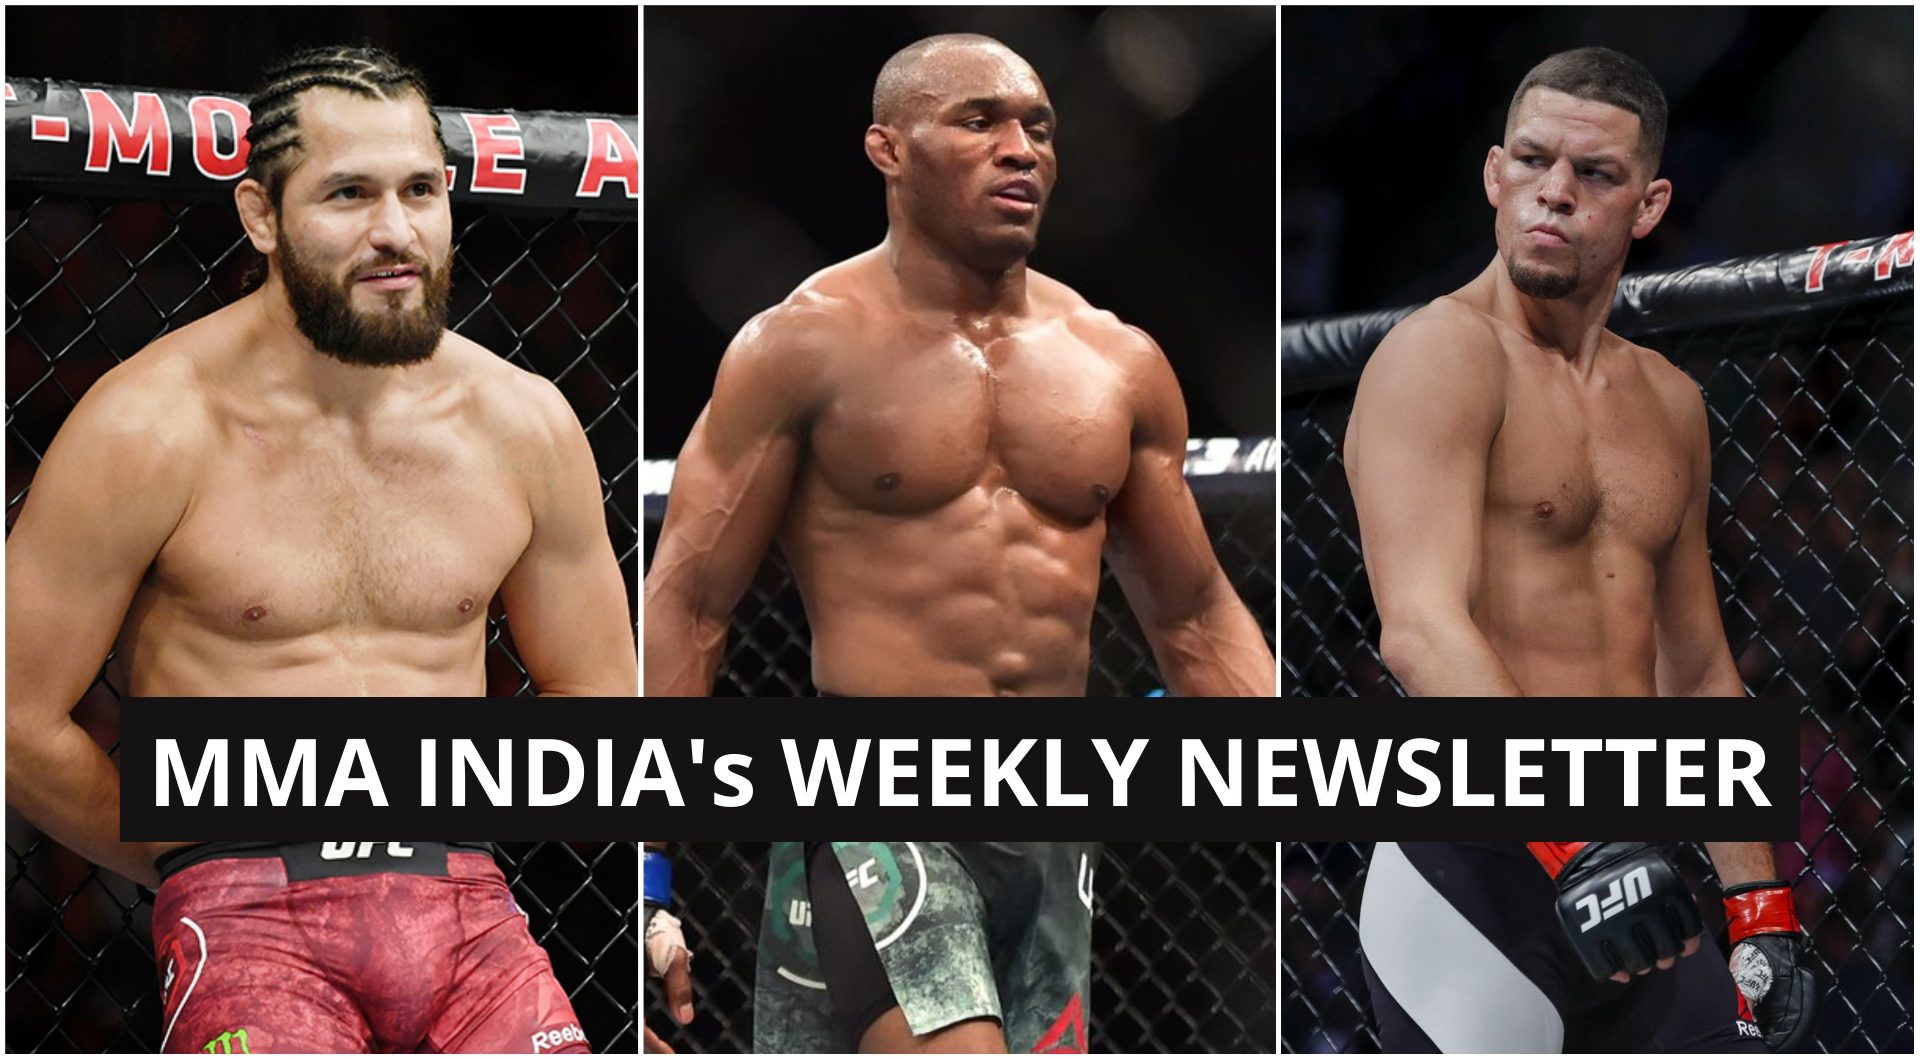 MMA India's Weekly Roundup (1-7 September): Diaz vs Masvidal 2 in works, Burns vs Usman set for UFC 256 and more - Masvidal